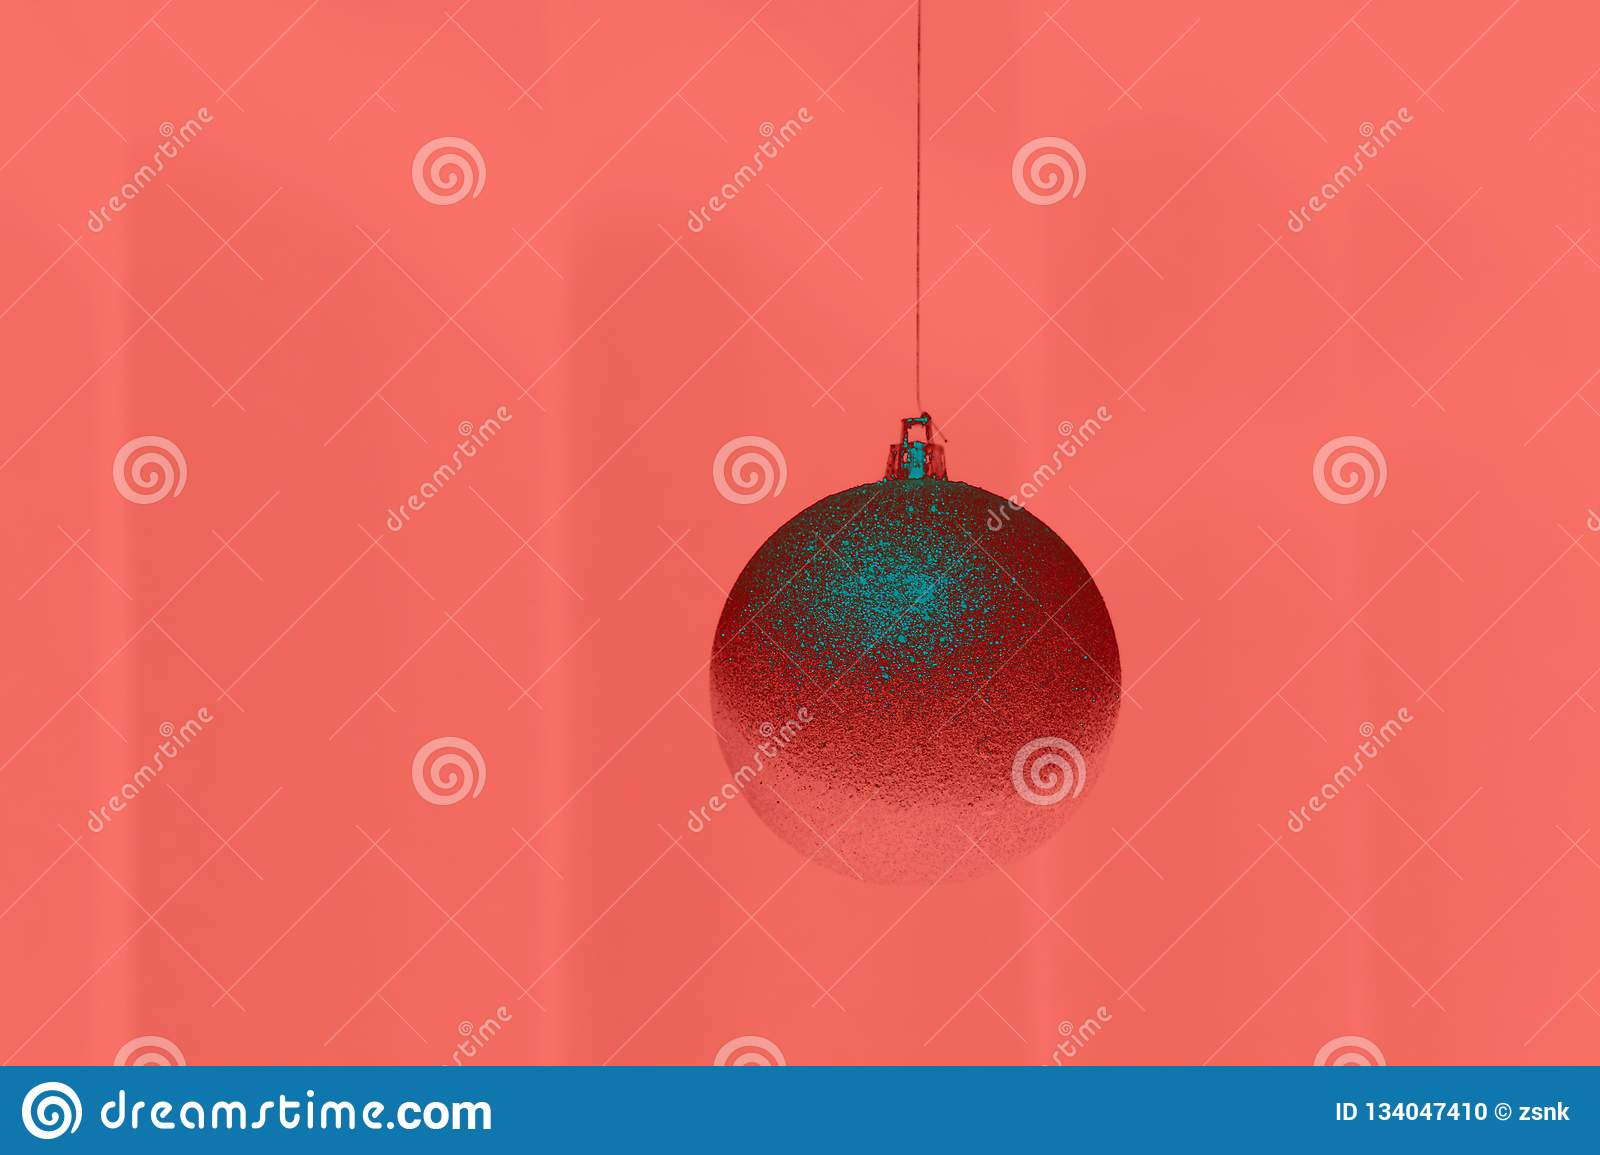 Pantone Christmas Ornaments Single Christmas Ball On Background In Colour Of The Year 2019